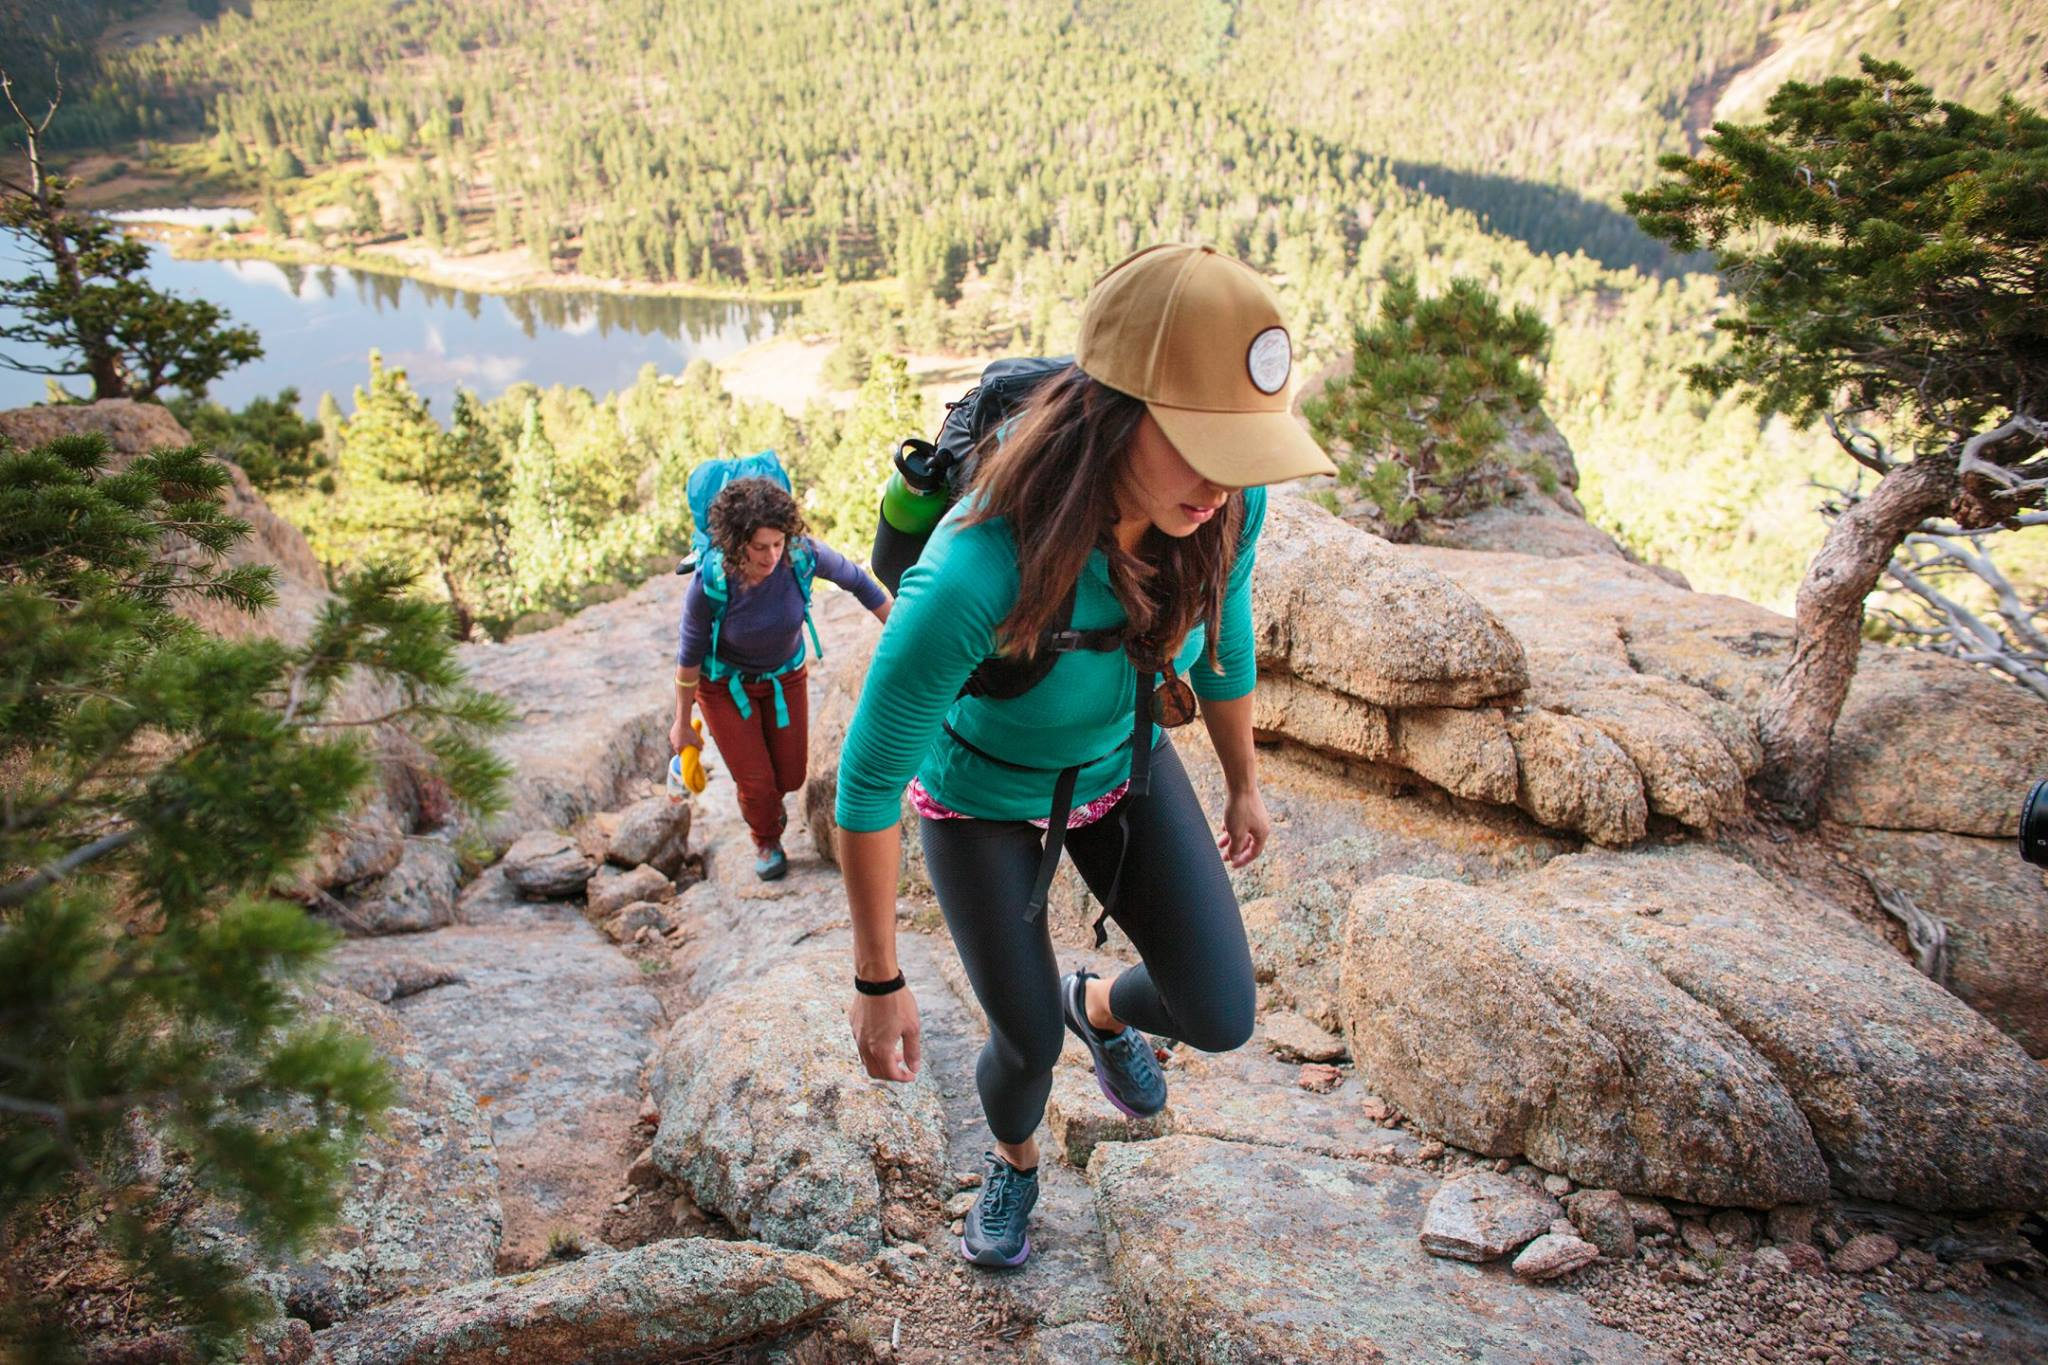 Two women hiking with backpacks on